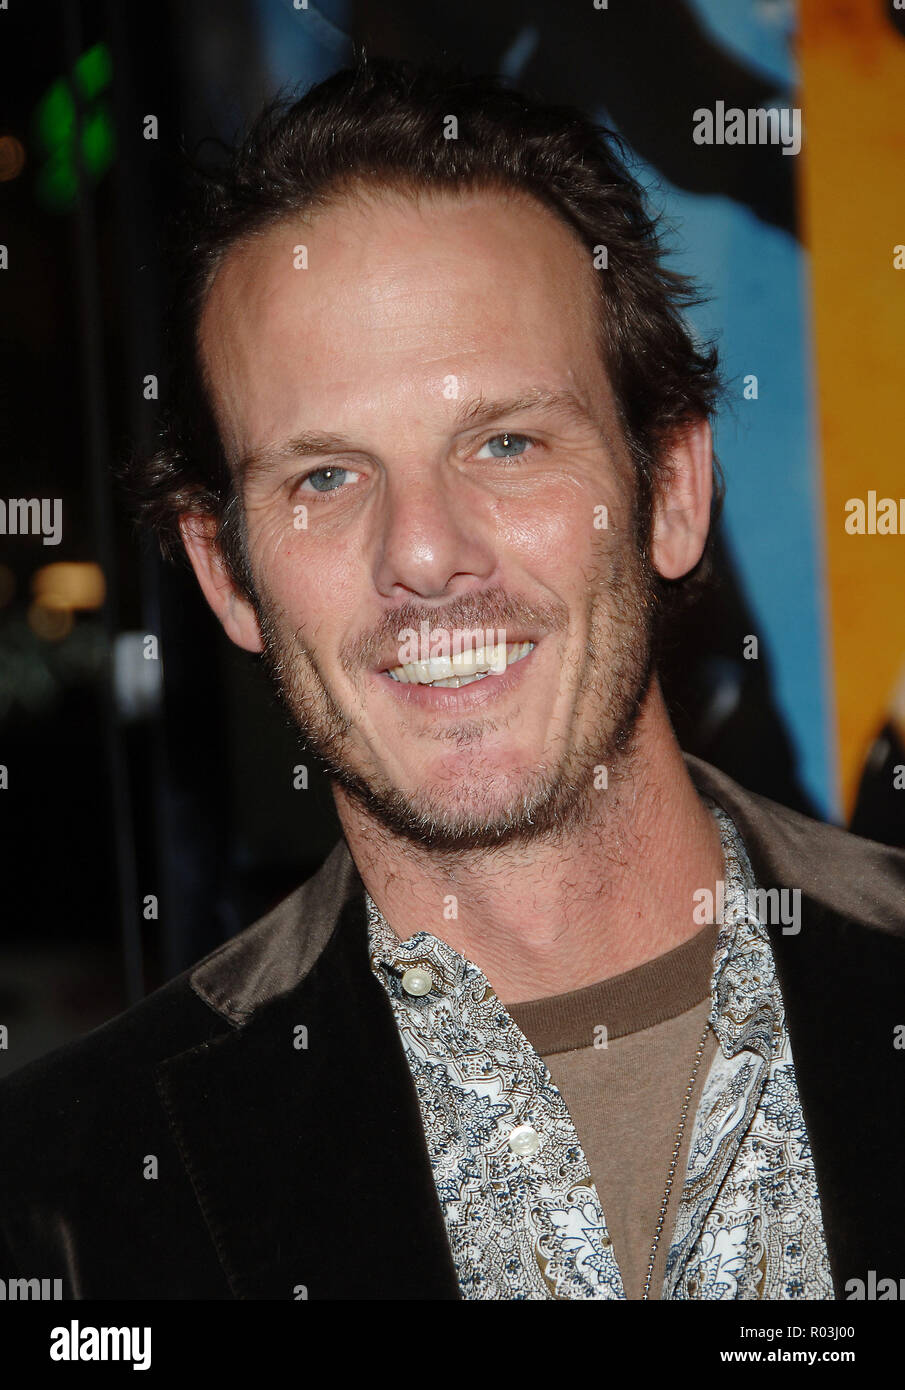 Peter Berg arriving at the Smokin' Aces at the Chinese Theatre In Los Angeles. January 18, 2007.  eye contact smile portrait headshot BergPeter048 Red Carpet Event, Vertical, USA, Film Industry, Celebrities,  Photography, Bestof, Arts Culture and Entertainment, Topix Celebrities fashion /  Vertical, Best of, Event in Hollywood Life - California,  Red Carpet and backstage, USA, Film Industry, Celebrities,  movie celebrities, TV celebrities, Music celebrities, Photography, Bestof, Arts Culture and Entertainment,  Topix, headshot, vertical, one person,, from the year , 2007, inquiry tsuni@Gamma-U - Stock Image